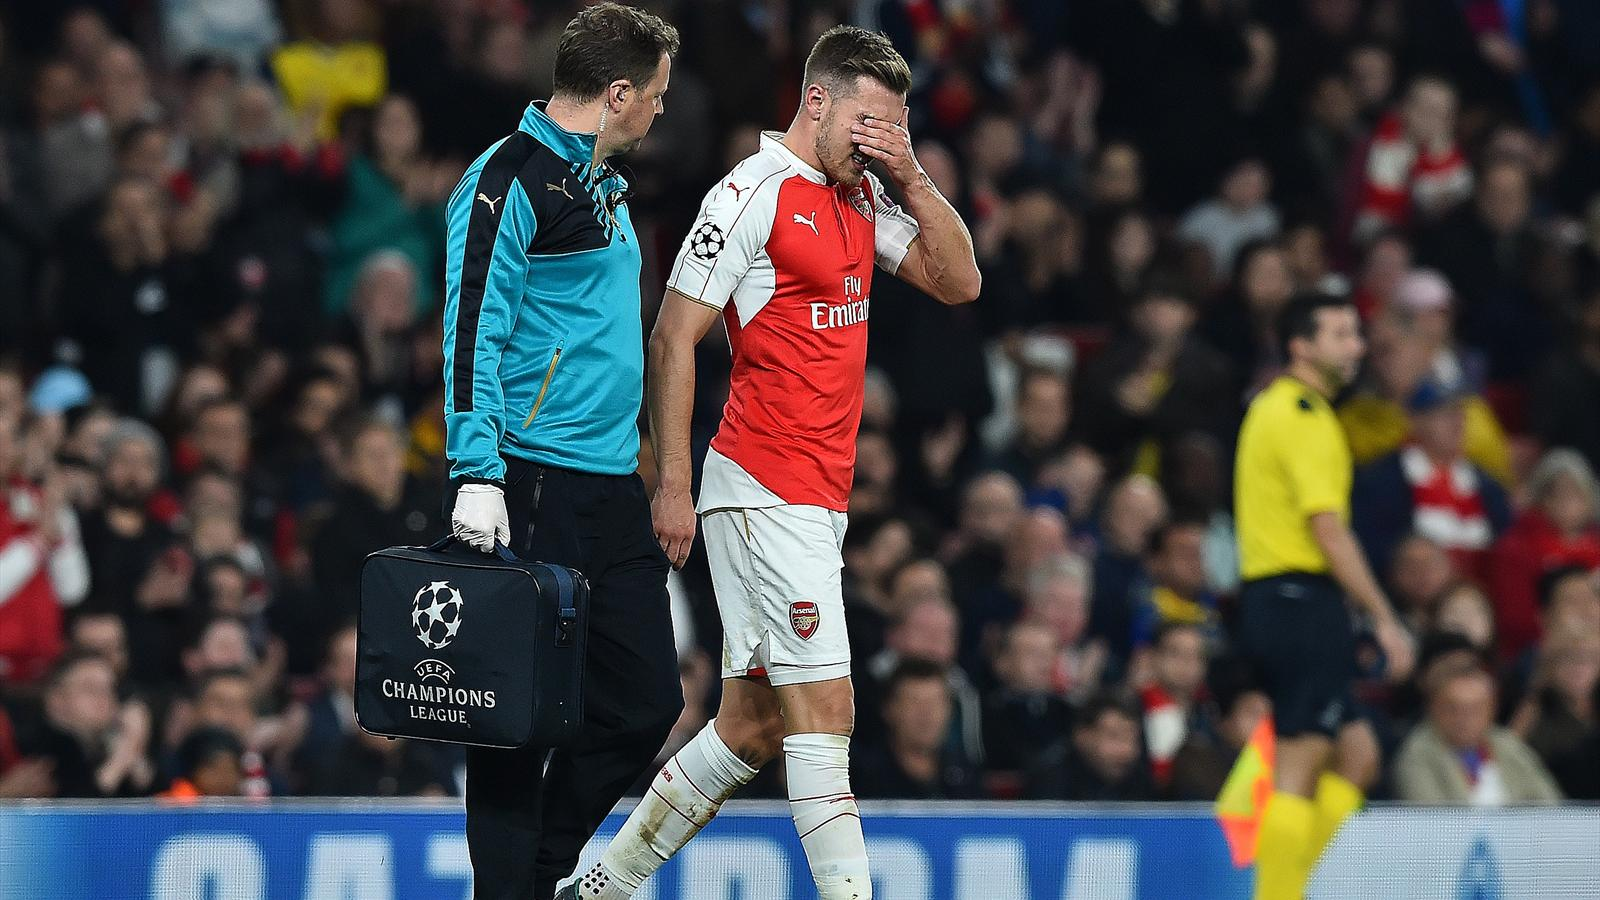 Arsenal's Welsh midfielder Aaron Ramsey (R) leaves the pitch injured during the UEFA Champions League football match between Arsenal and Bayern Munich